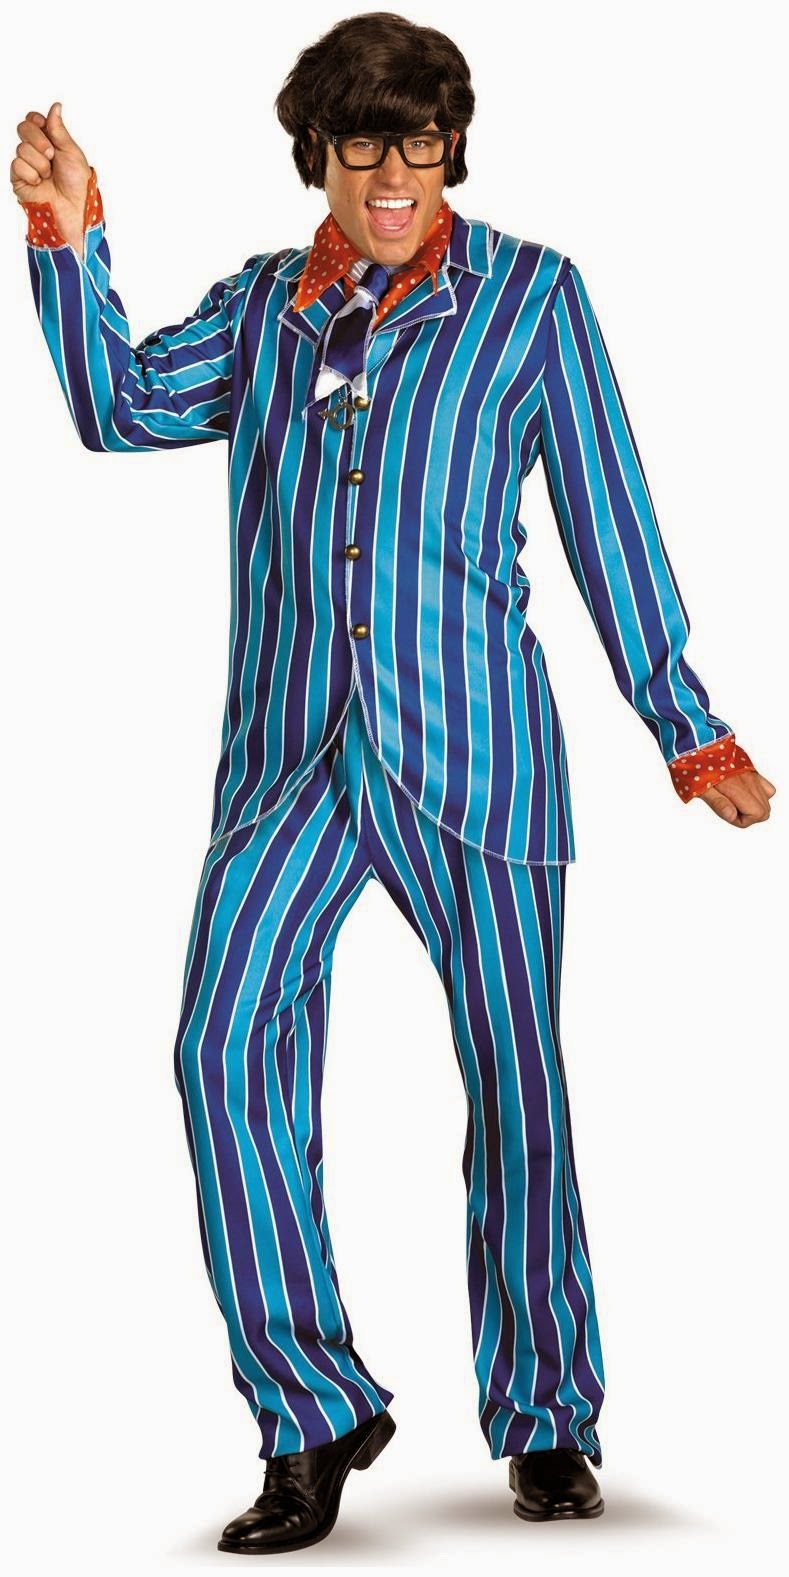 http://www.partybell.com/p-31808-austin-powers-carnaby-street-blue-suit-deluxe-adult-costume.aspx